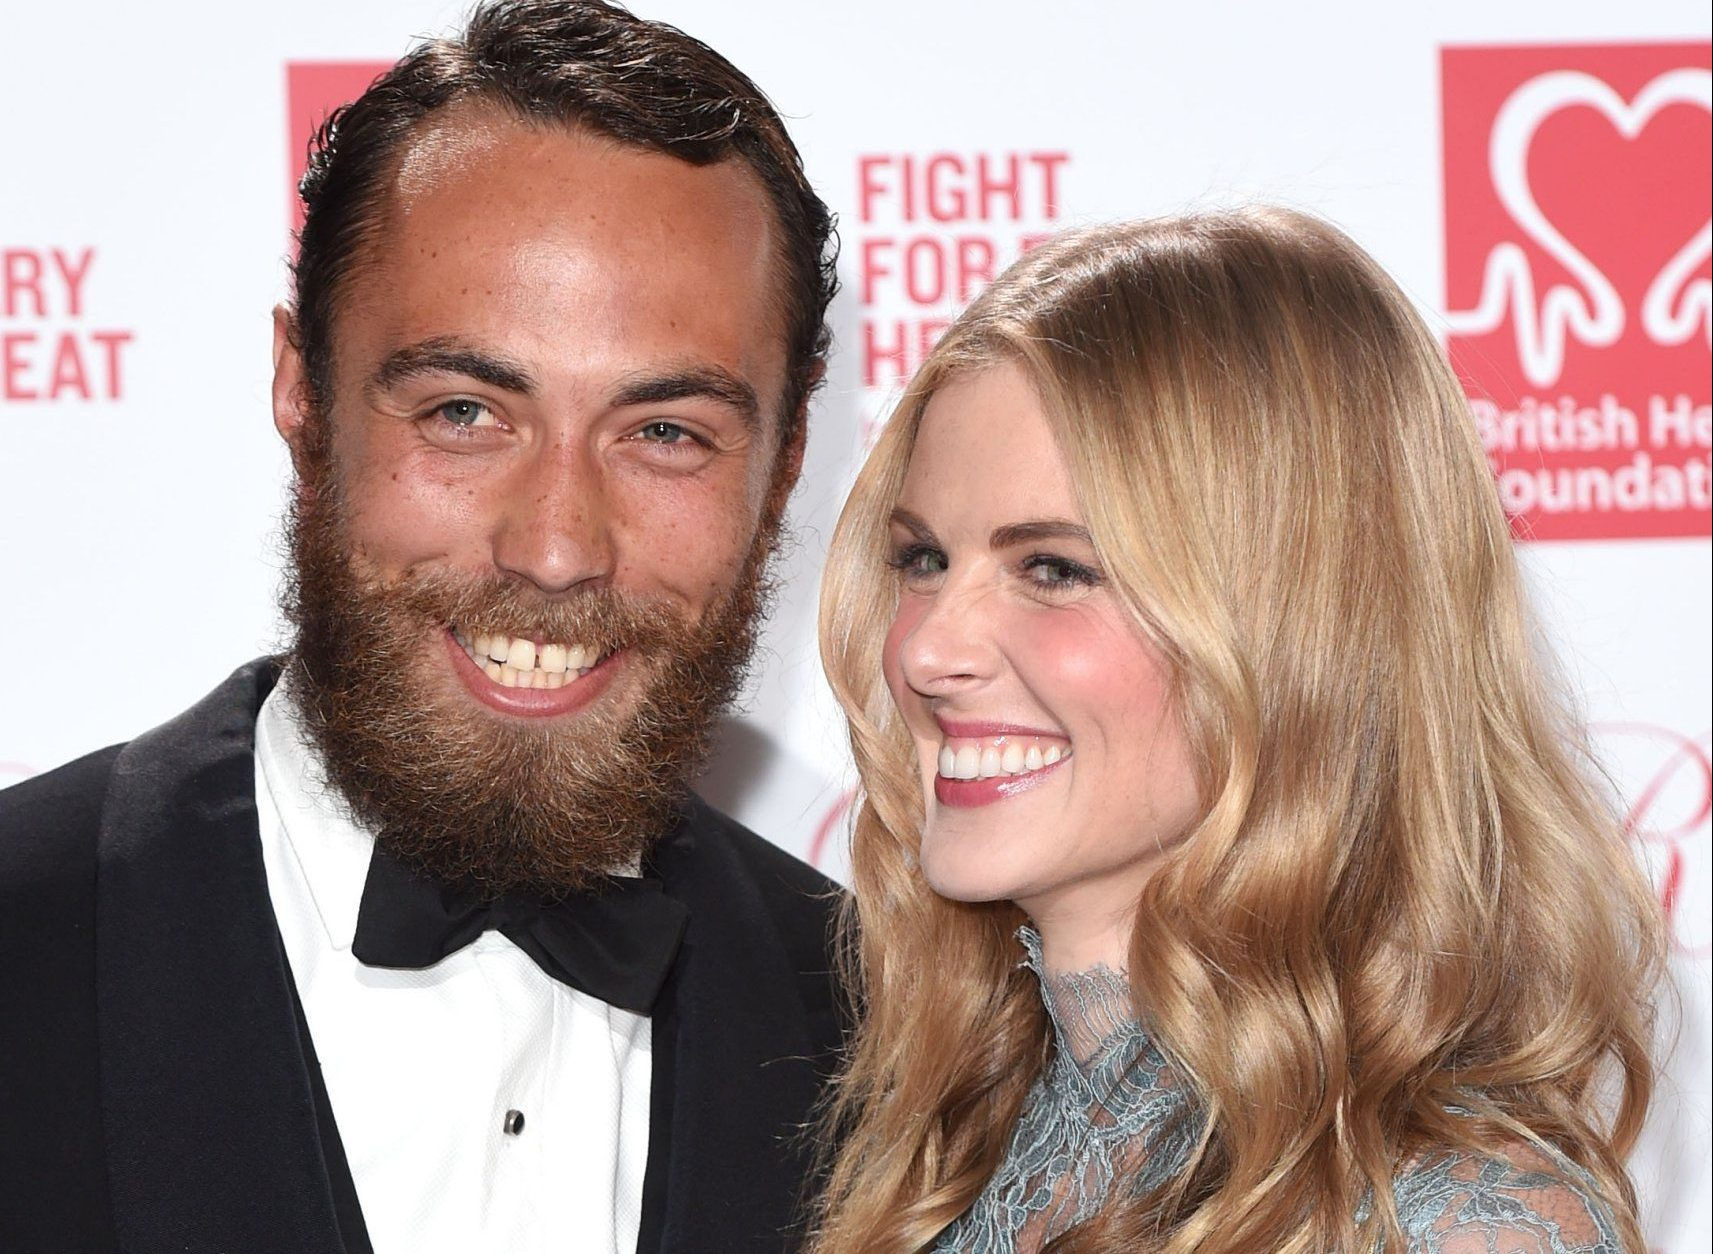 Donna Air confirms split from James Middleton revealing they 'uncoupled' in December